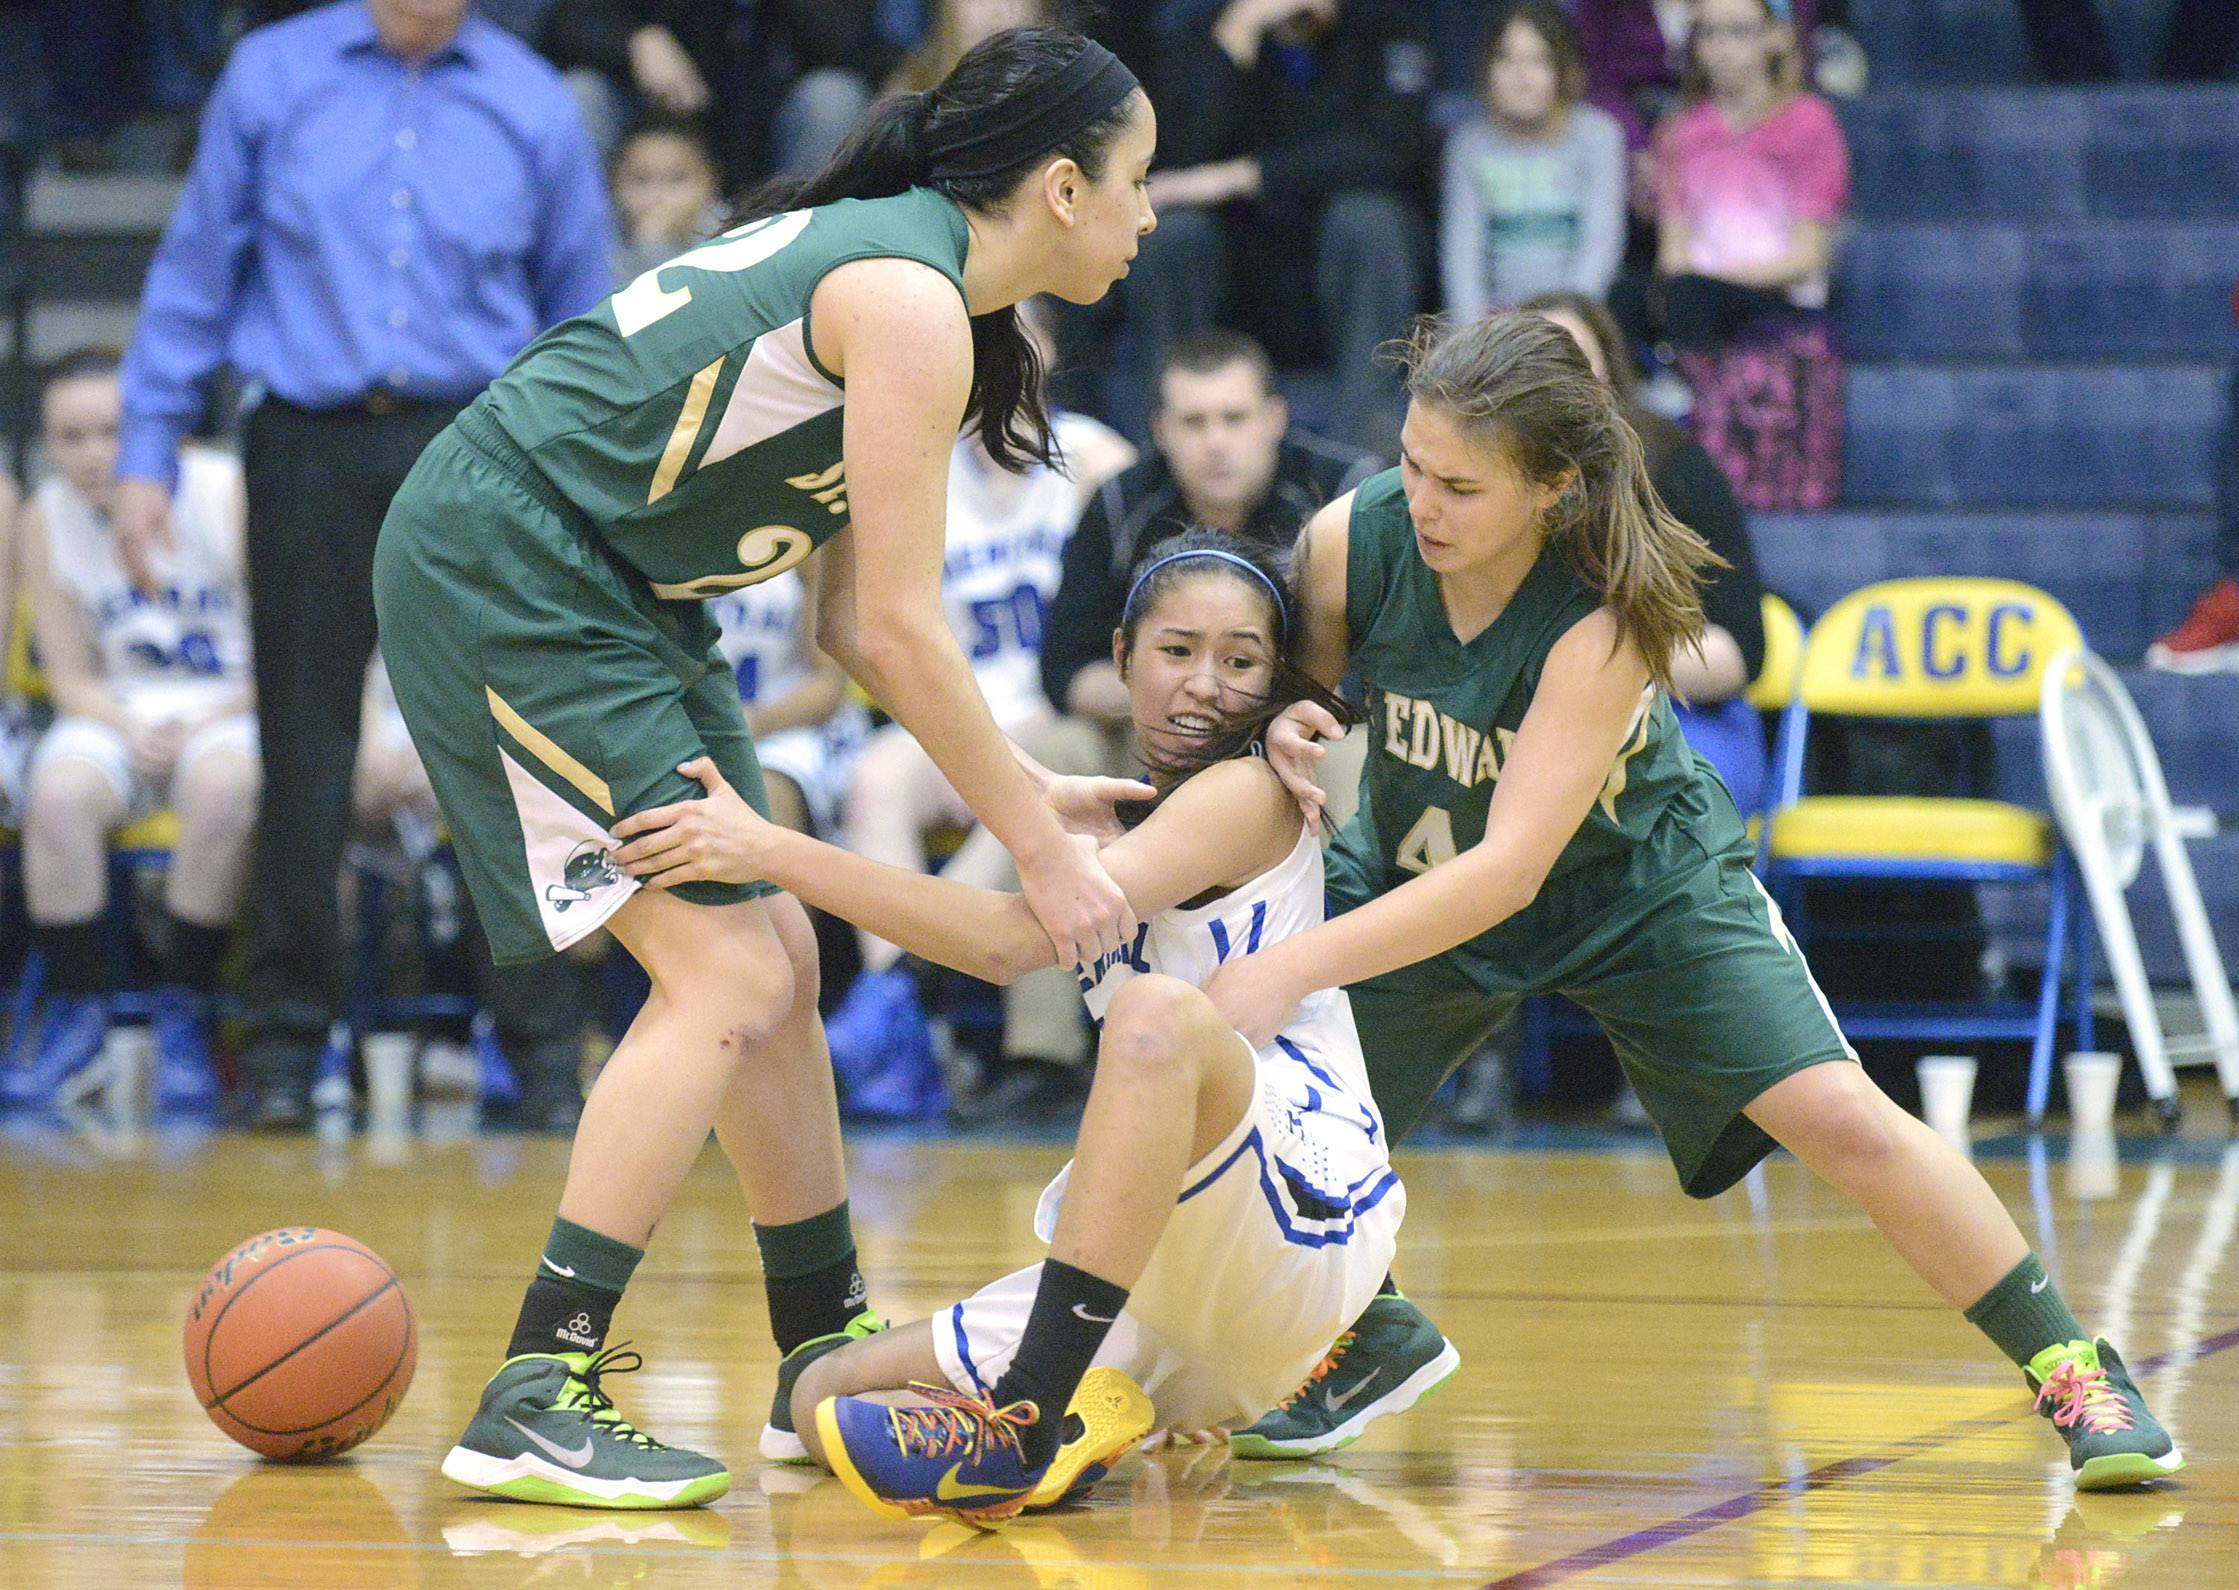 Burlington Central's Samantha Cruz is blocked from regaining the ball by St. Edward's Clarissa Ramos, left, and Madelyn Spagnola, right, in the fourth quarter of the Class 3A regional championship game on Saturday, February 22.